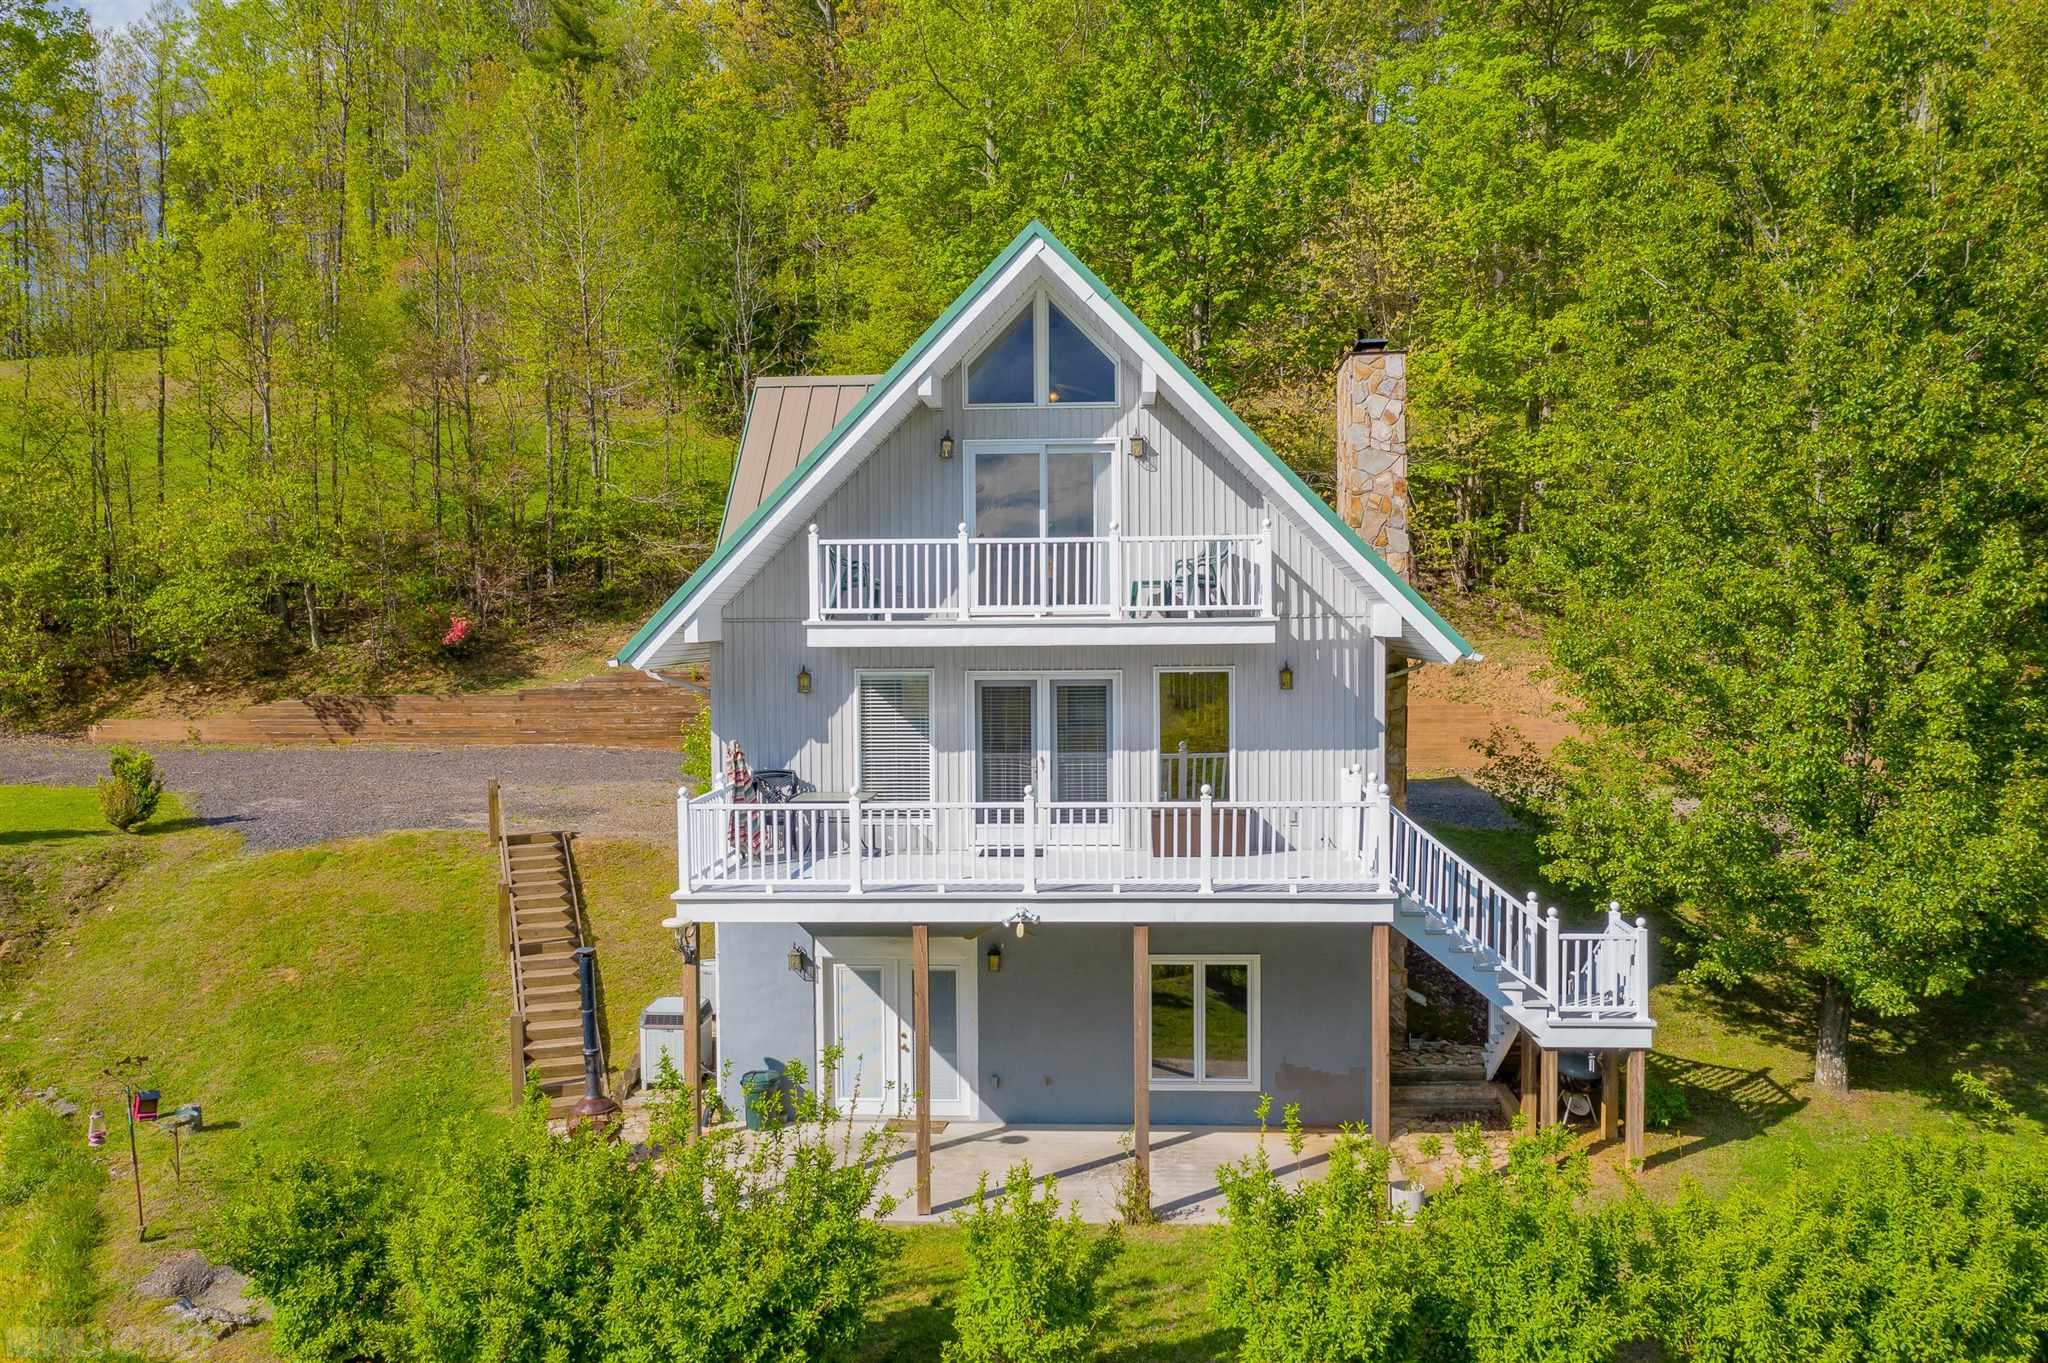 Beautiful Home with Mountain Views! Perfectly placed in Blue Ridge Mountains of SouthWest Virginia. This Chalet style home is in a great location offering seclusion and accessibility to all the major attractions of the Blue Ridge. The home offers plenty of space inside and out, laid out perfectly for a second or primary residence. Beautiful Red Oak floors cover the main and second floors. This home comes move in ready with nearly all furnishings! Enjoy the peaceful mountain view from the Balcony, Deck, or Patio. If privacy is your priority, this property offers close to 4 acres for your enjoyment. A convenient storage shed is also located at the end of the drive, matching the exterior of the home. With power and water already accessible, the shed would make an excellent tiny guest house! Offering plenty of room for you and your guests, and a great family/entertainment room in the finished basement. This mountain home truly has it all!